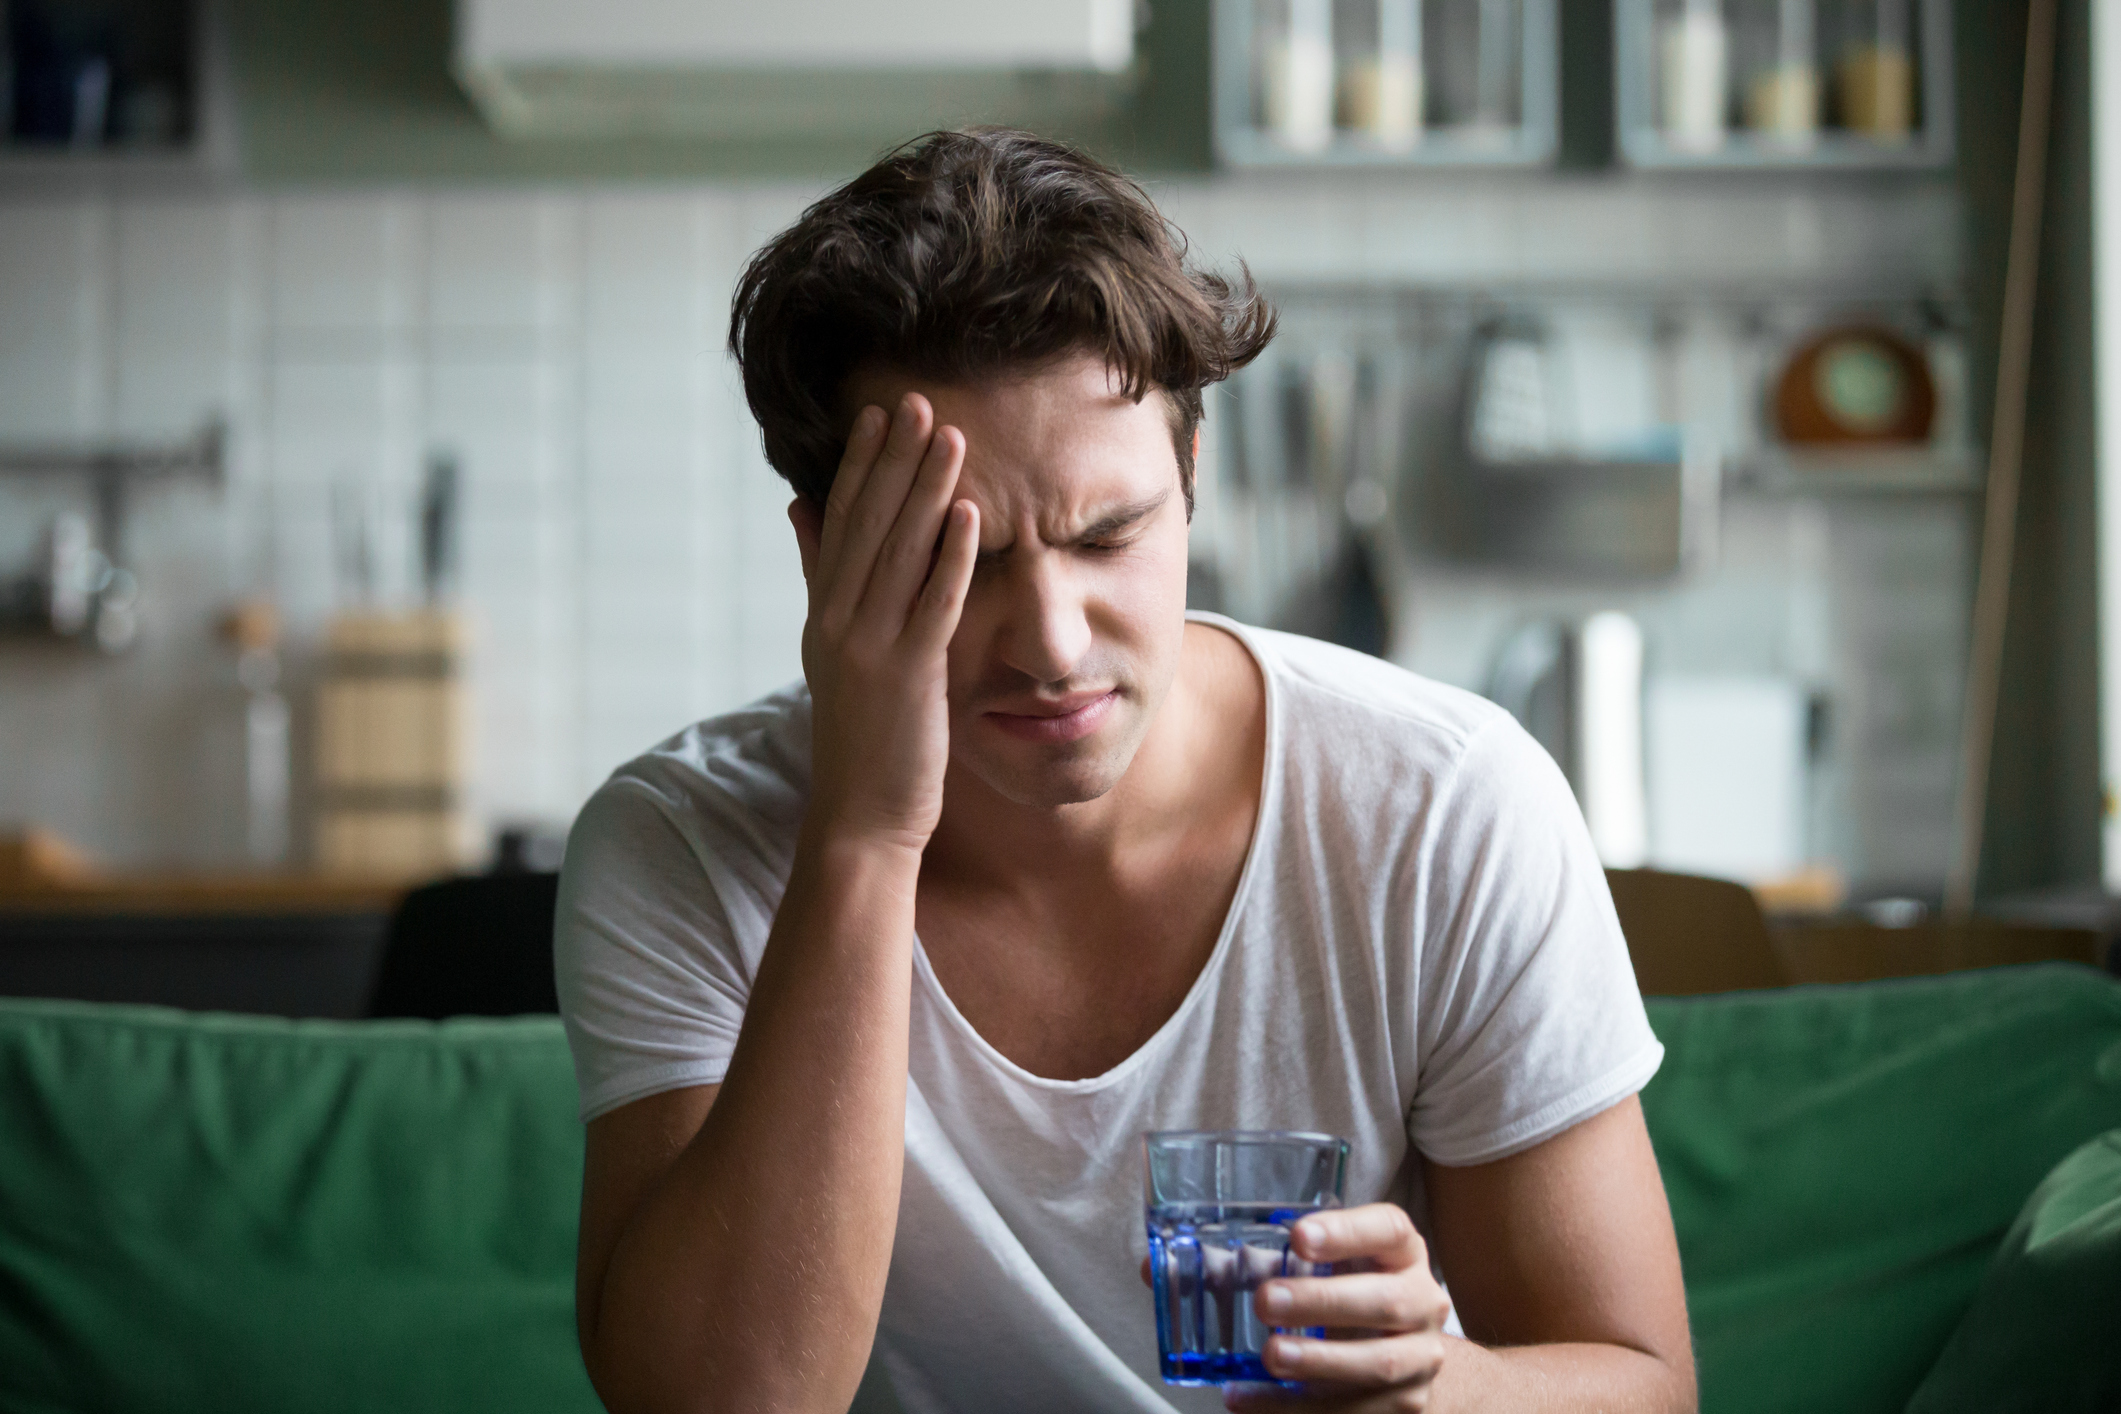 Man hungover with headache, drinking water.